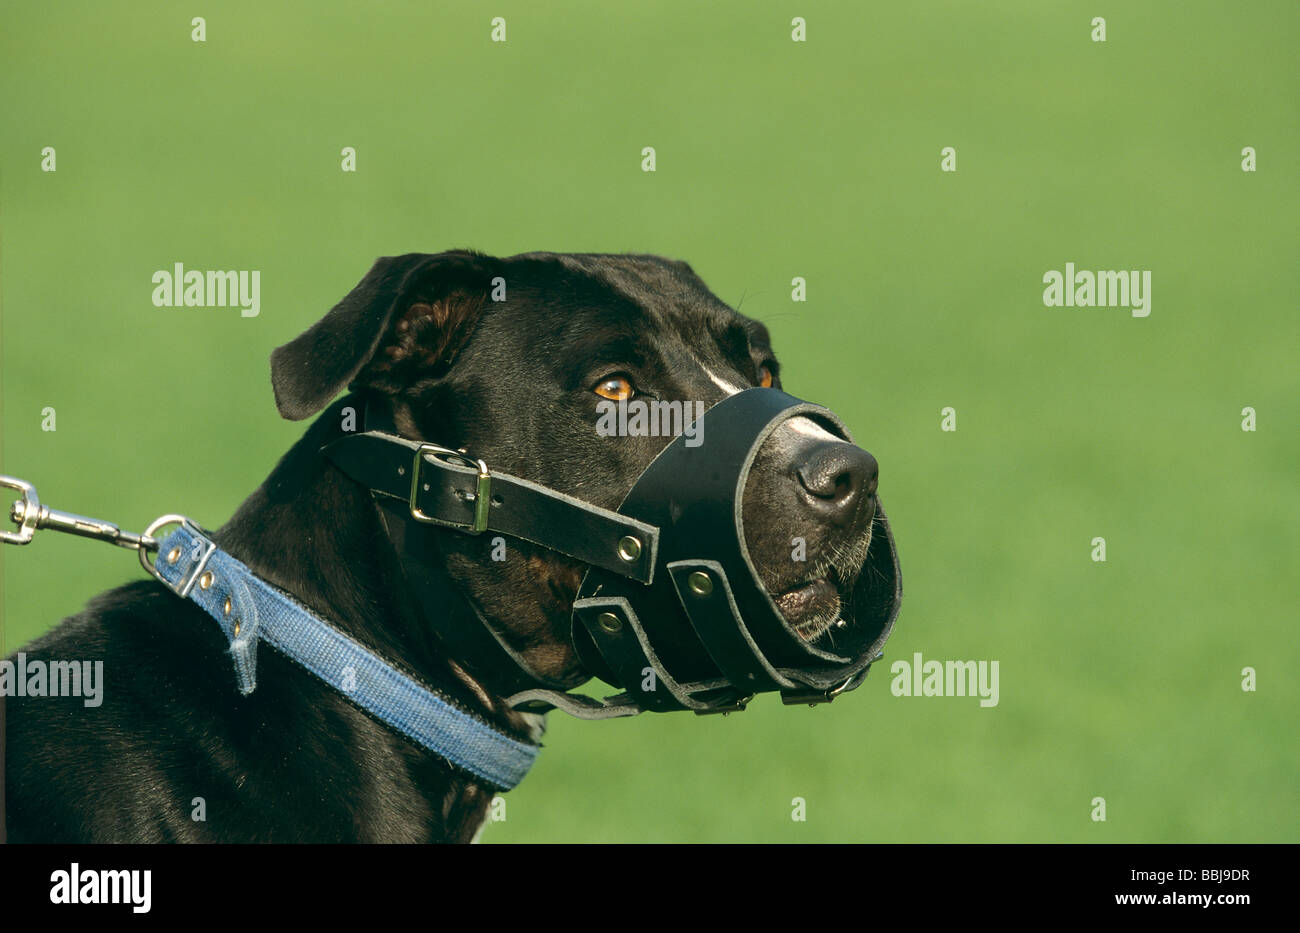 half breed dog (Staffordshire Bullterrier) with muzzle - portrait - Stock Image